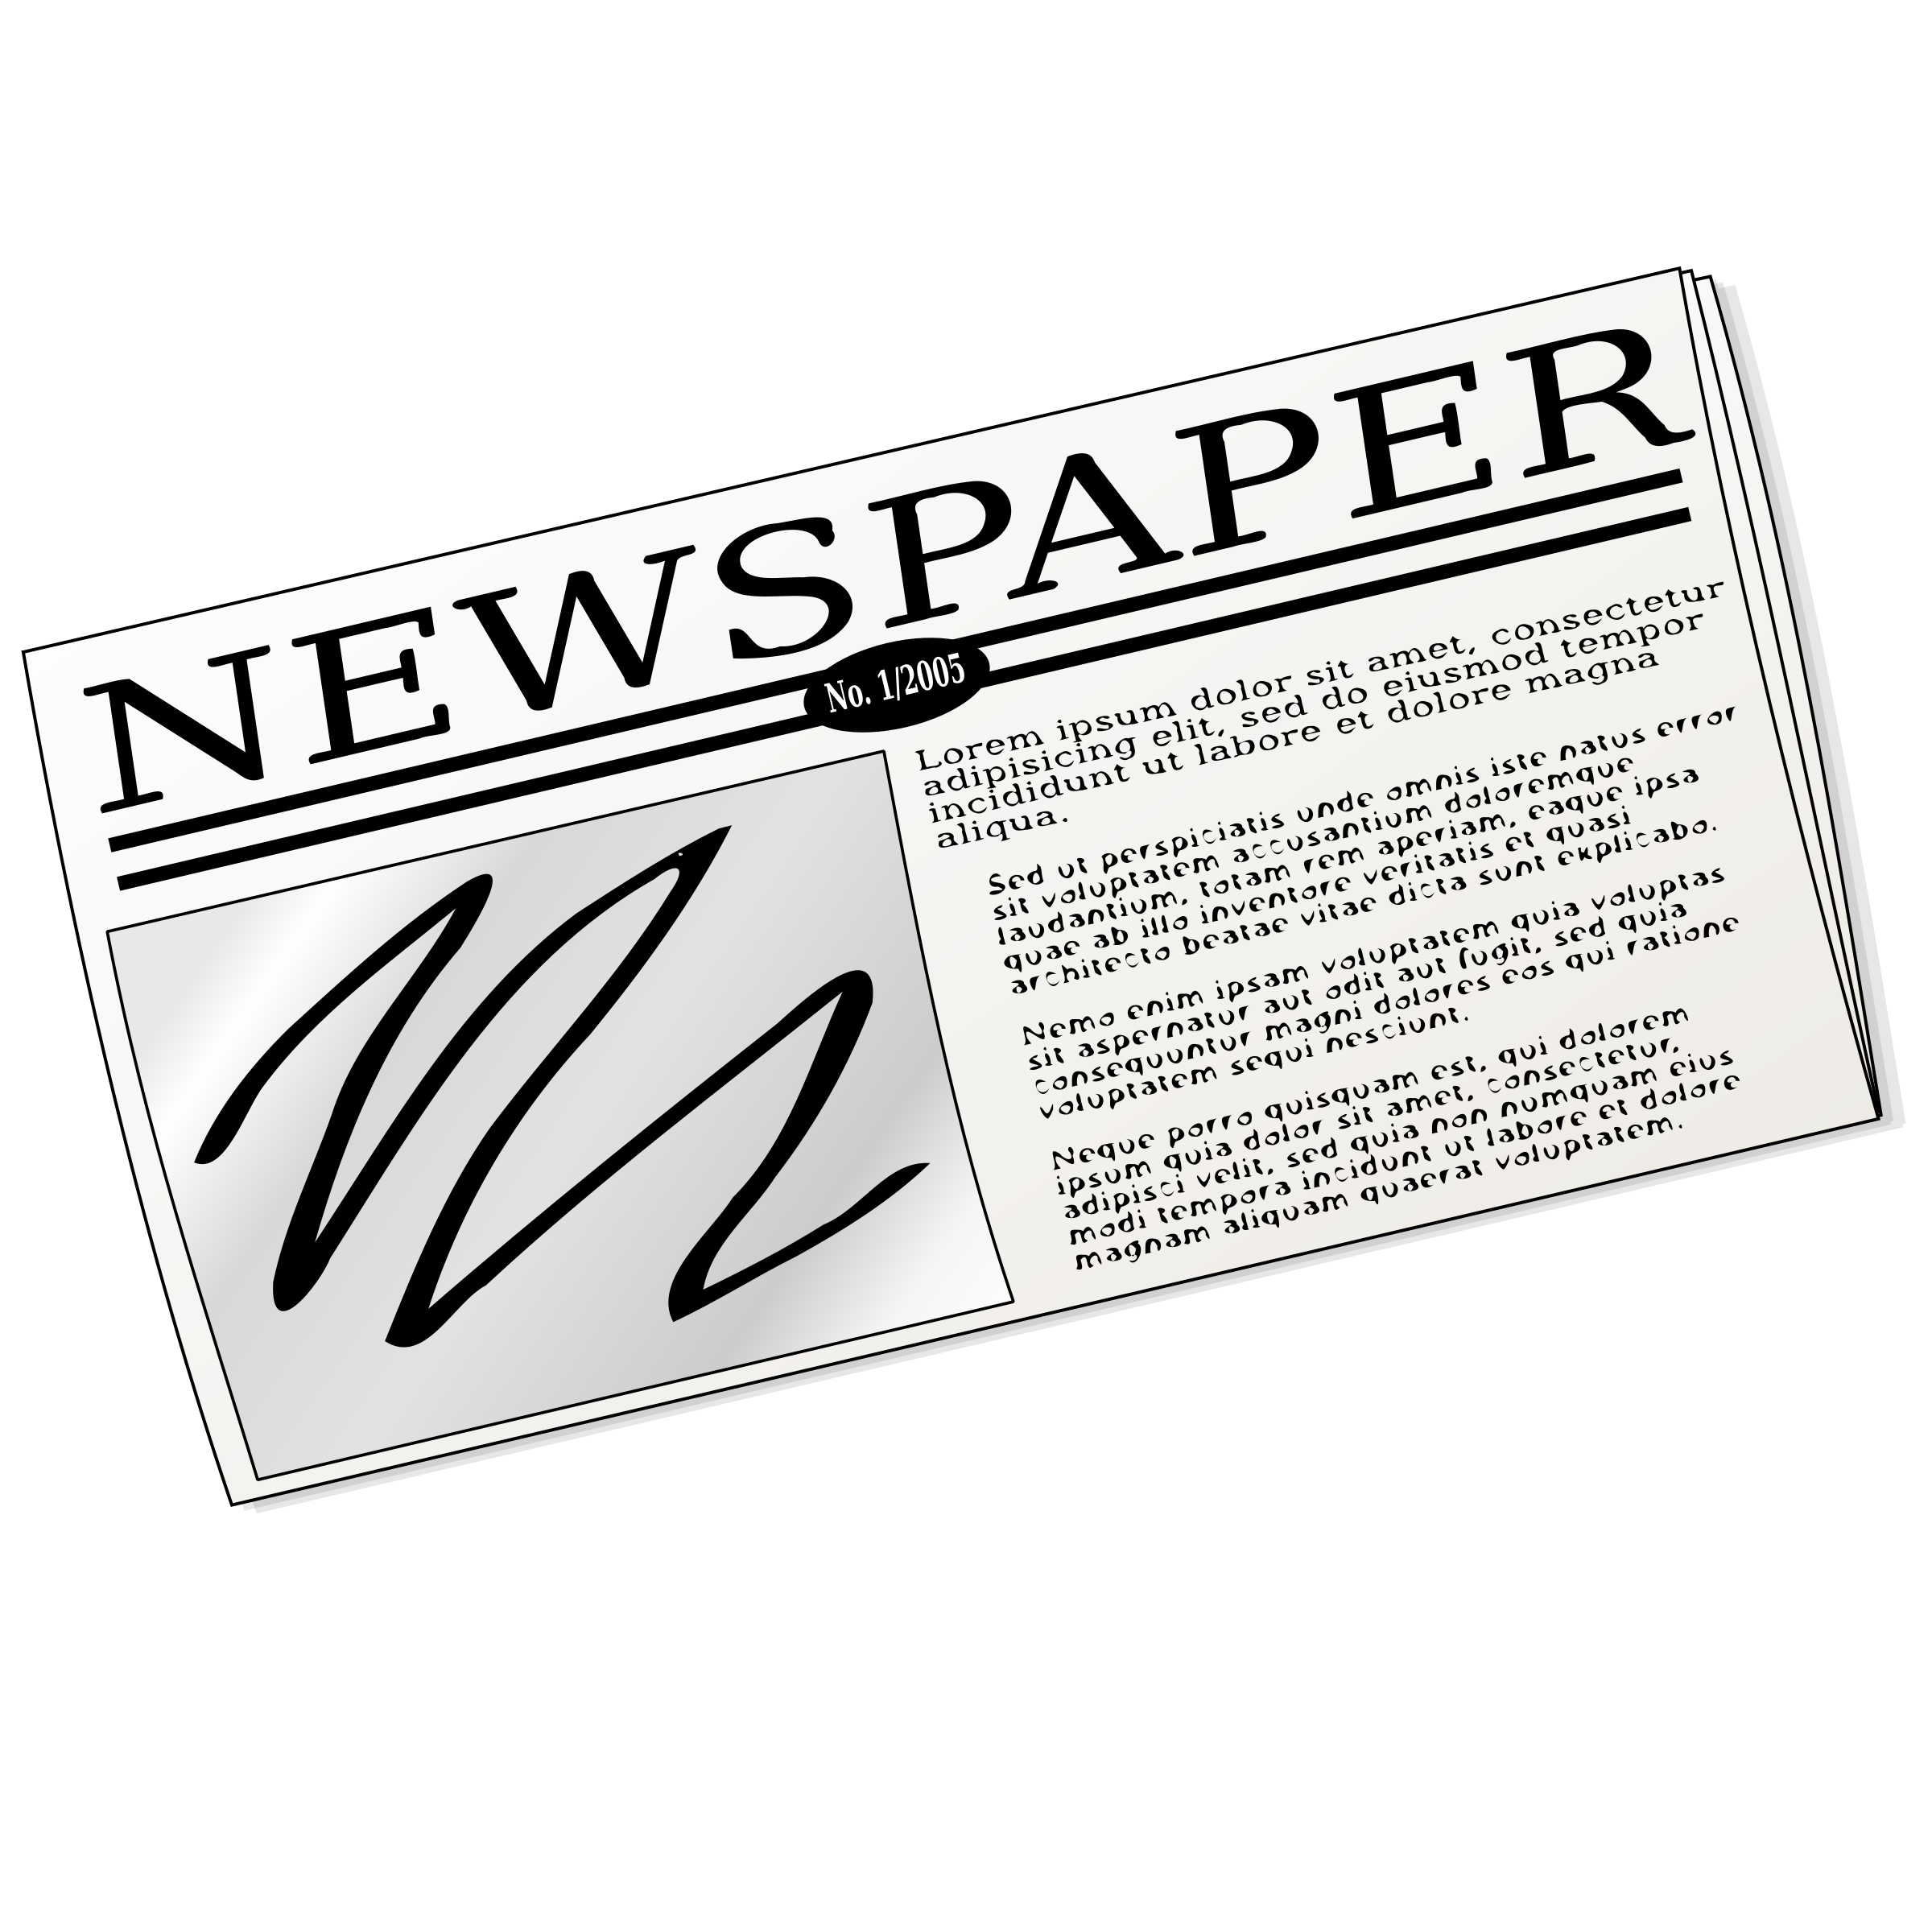 Newspaper by nicubunu